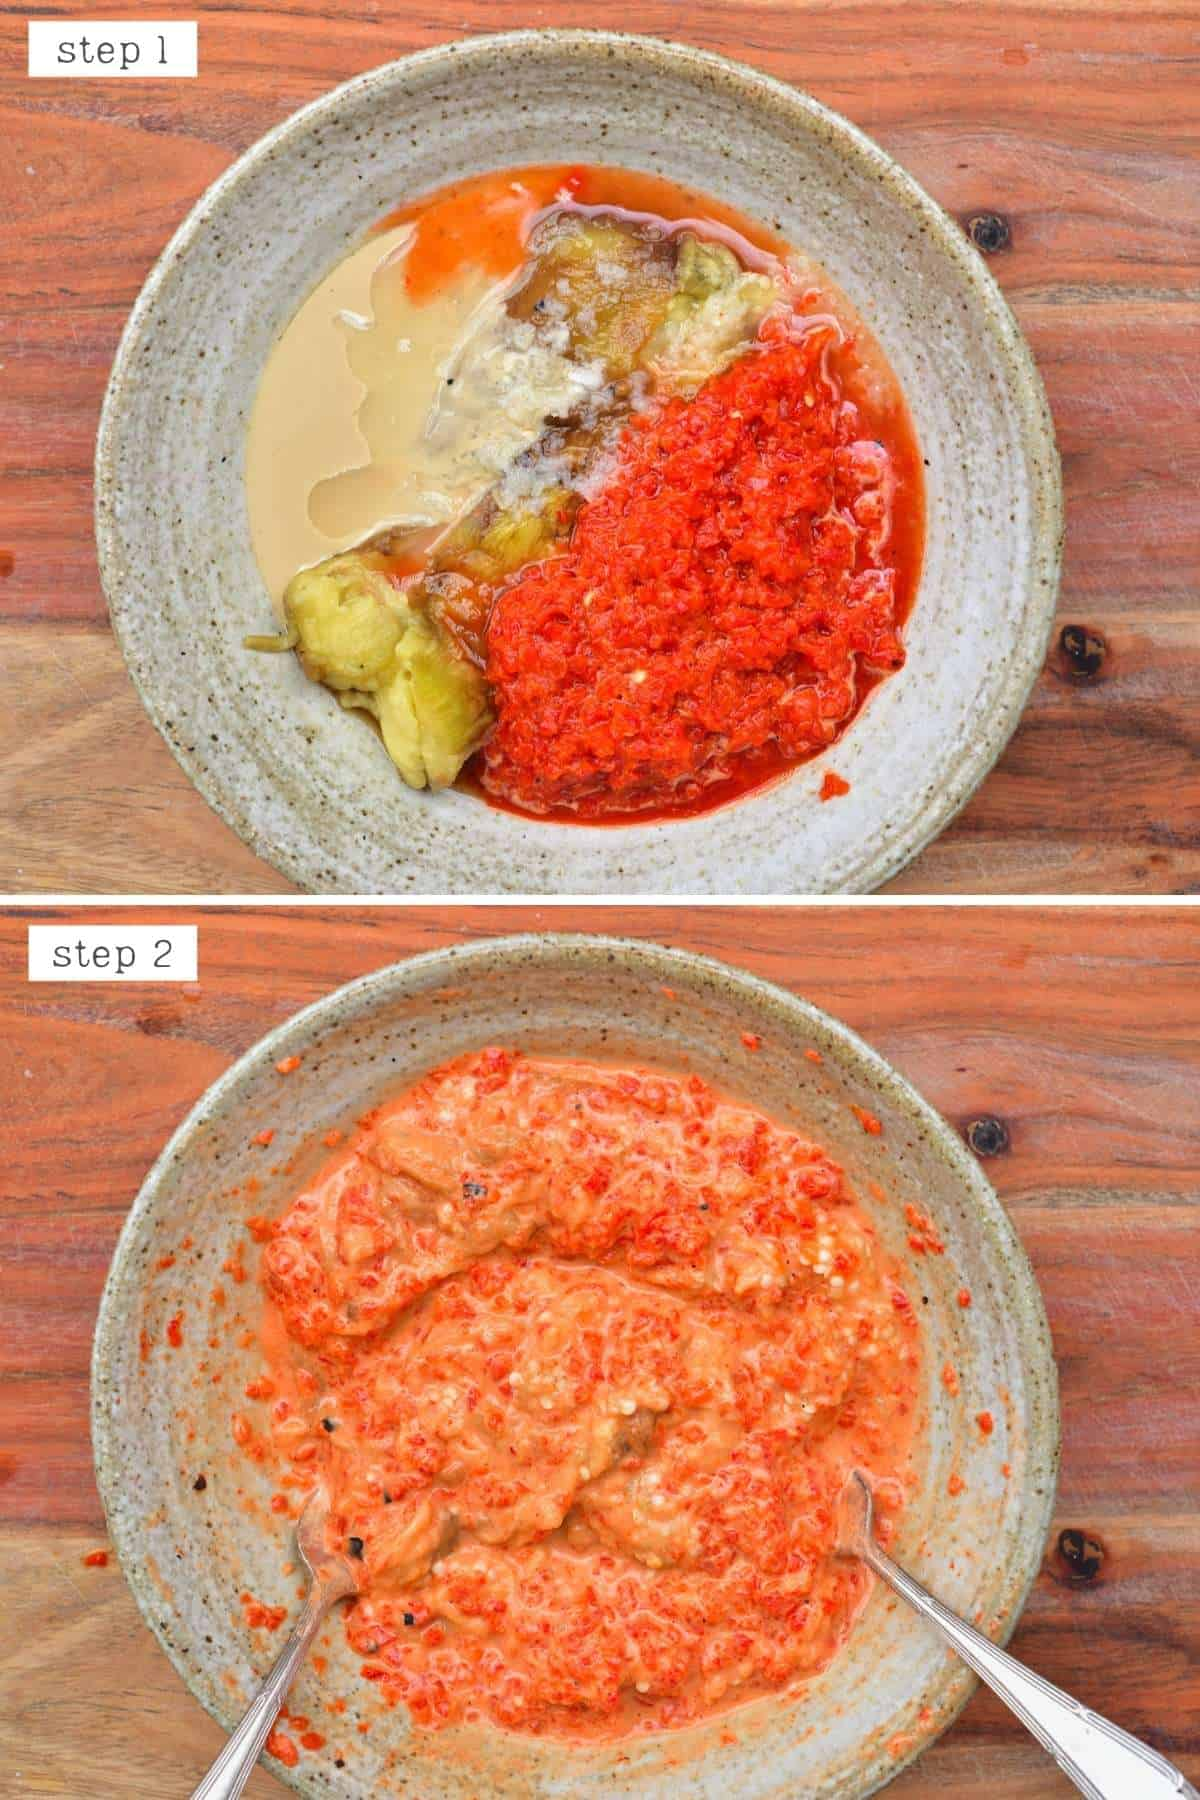 Steps for making roasted red pepper eggplant dip